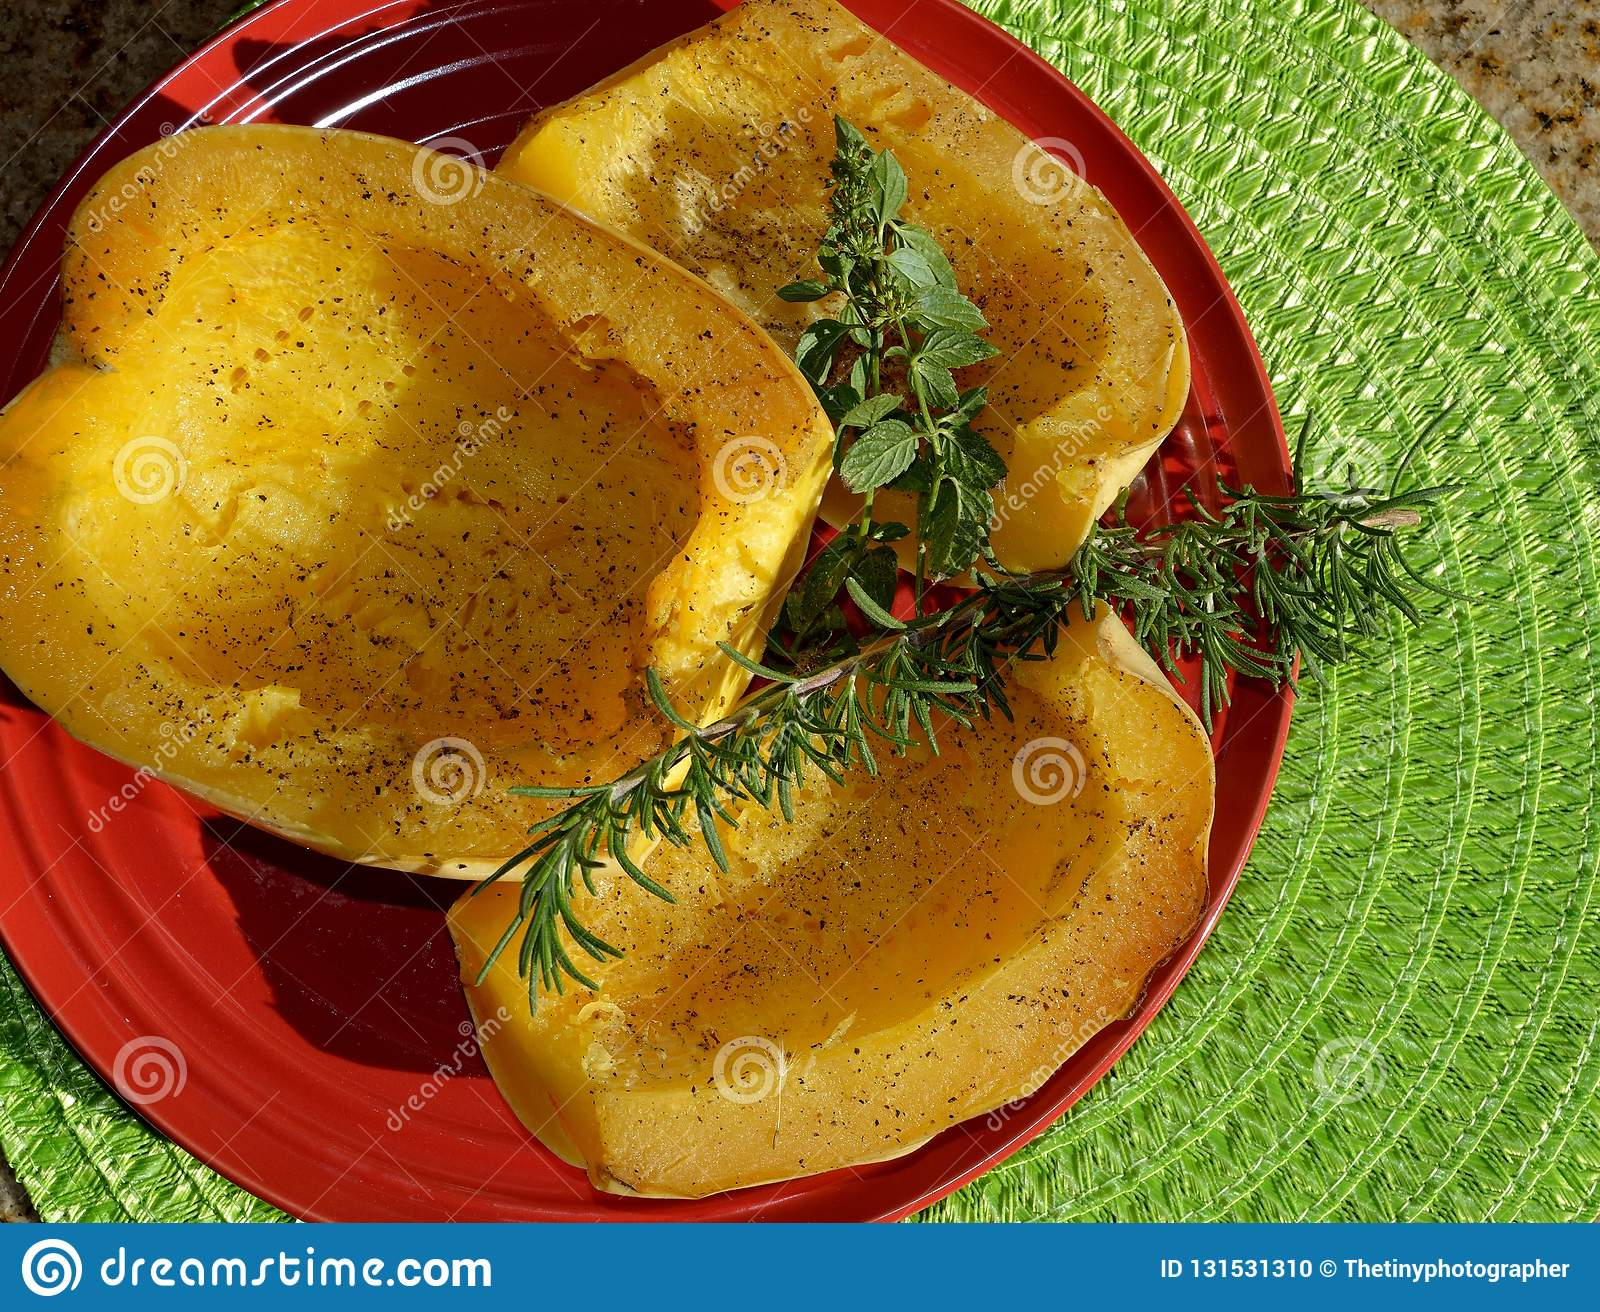 ff98f2f839a Baked Spaghetti Squash With Garnish Stock Photo - Image of mentha ...